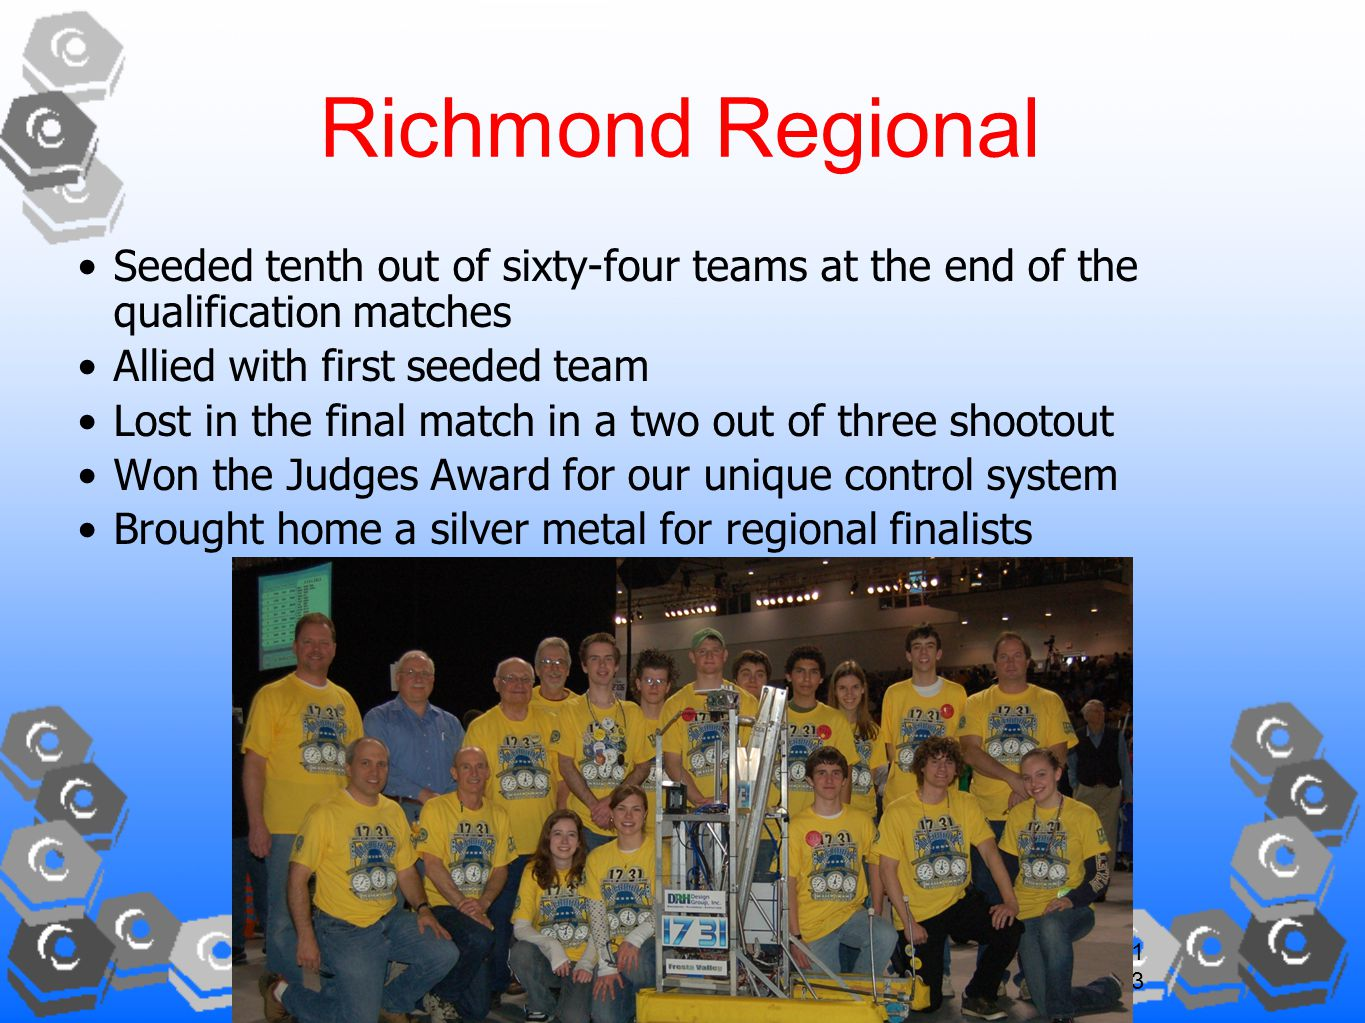 13 Richmond Regional Seeded tenth out of sixty-four teams at the end of the qualification matches Allied with first seeded team Lost in the final match in a two out of three shootout Won the Judges Award for our unique control system Brought home a silver metal for regional finalists